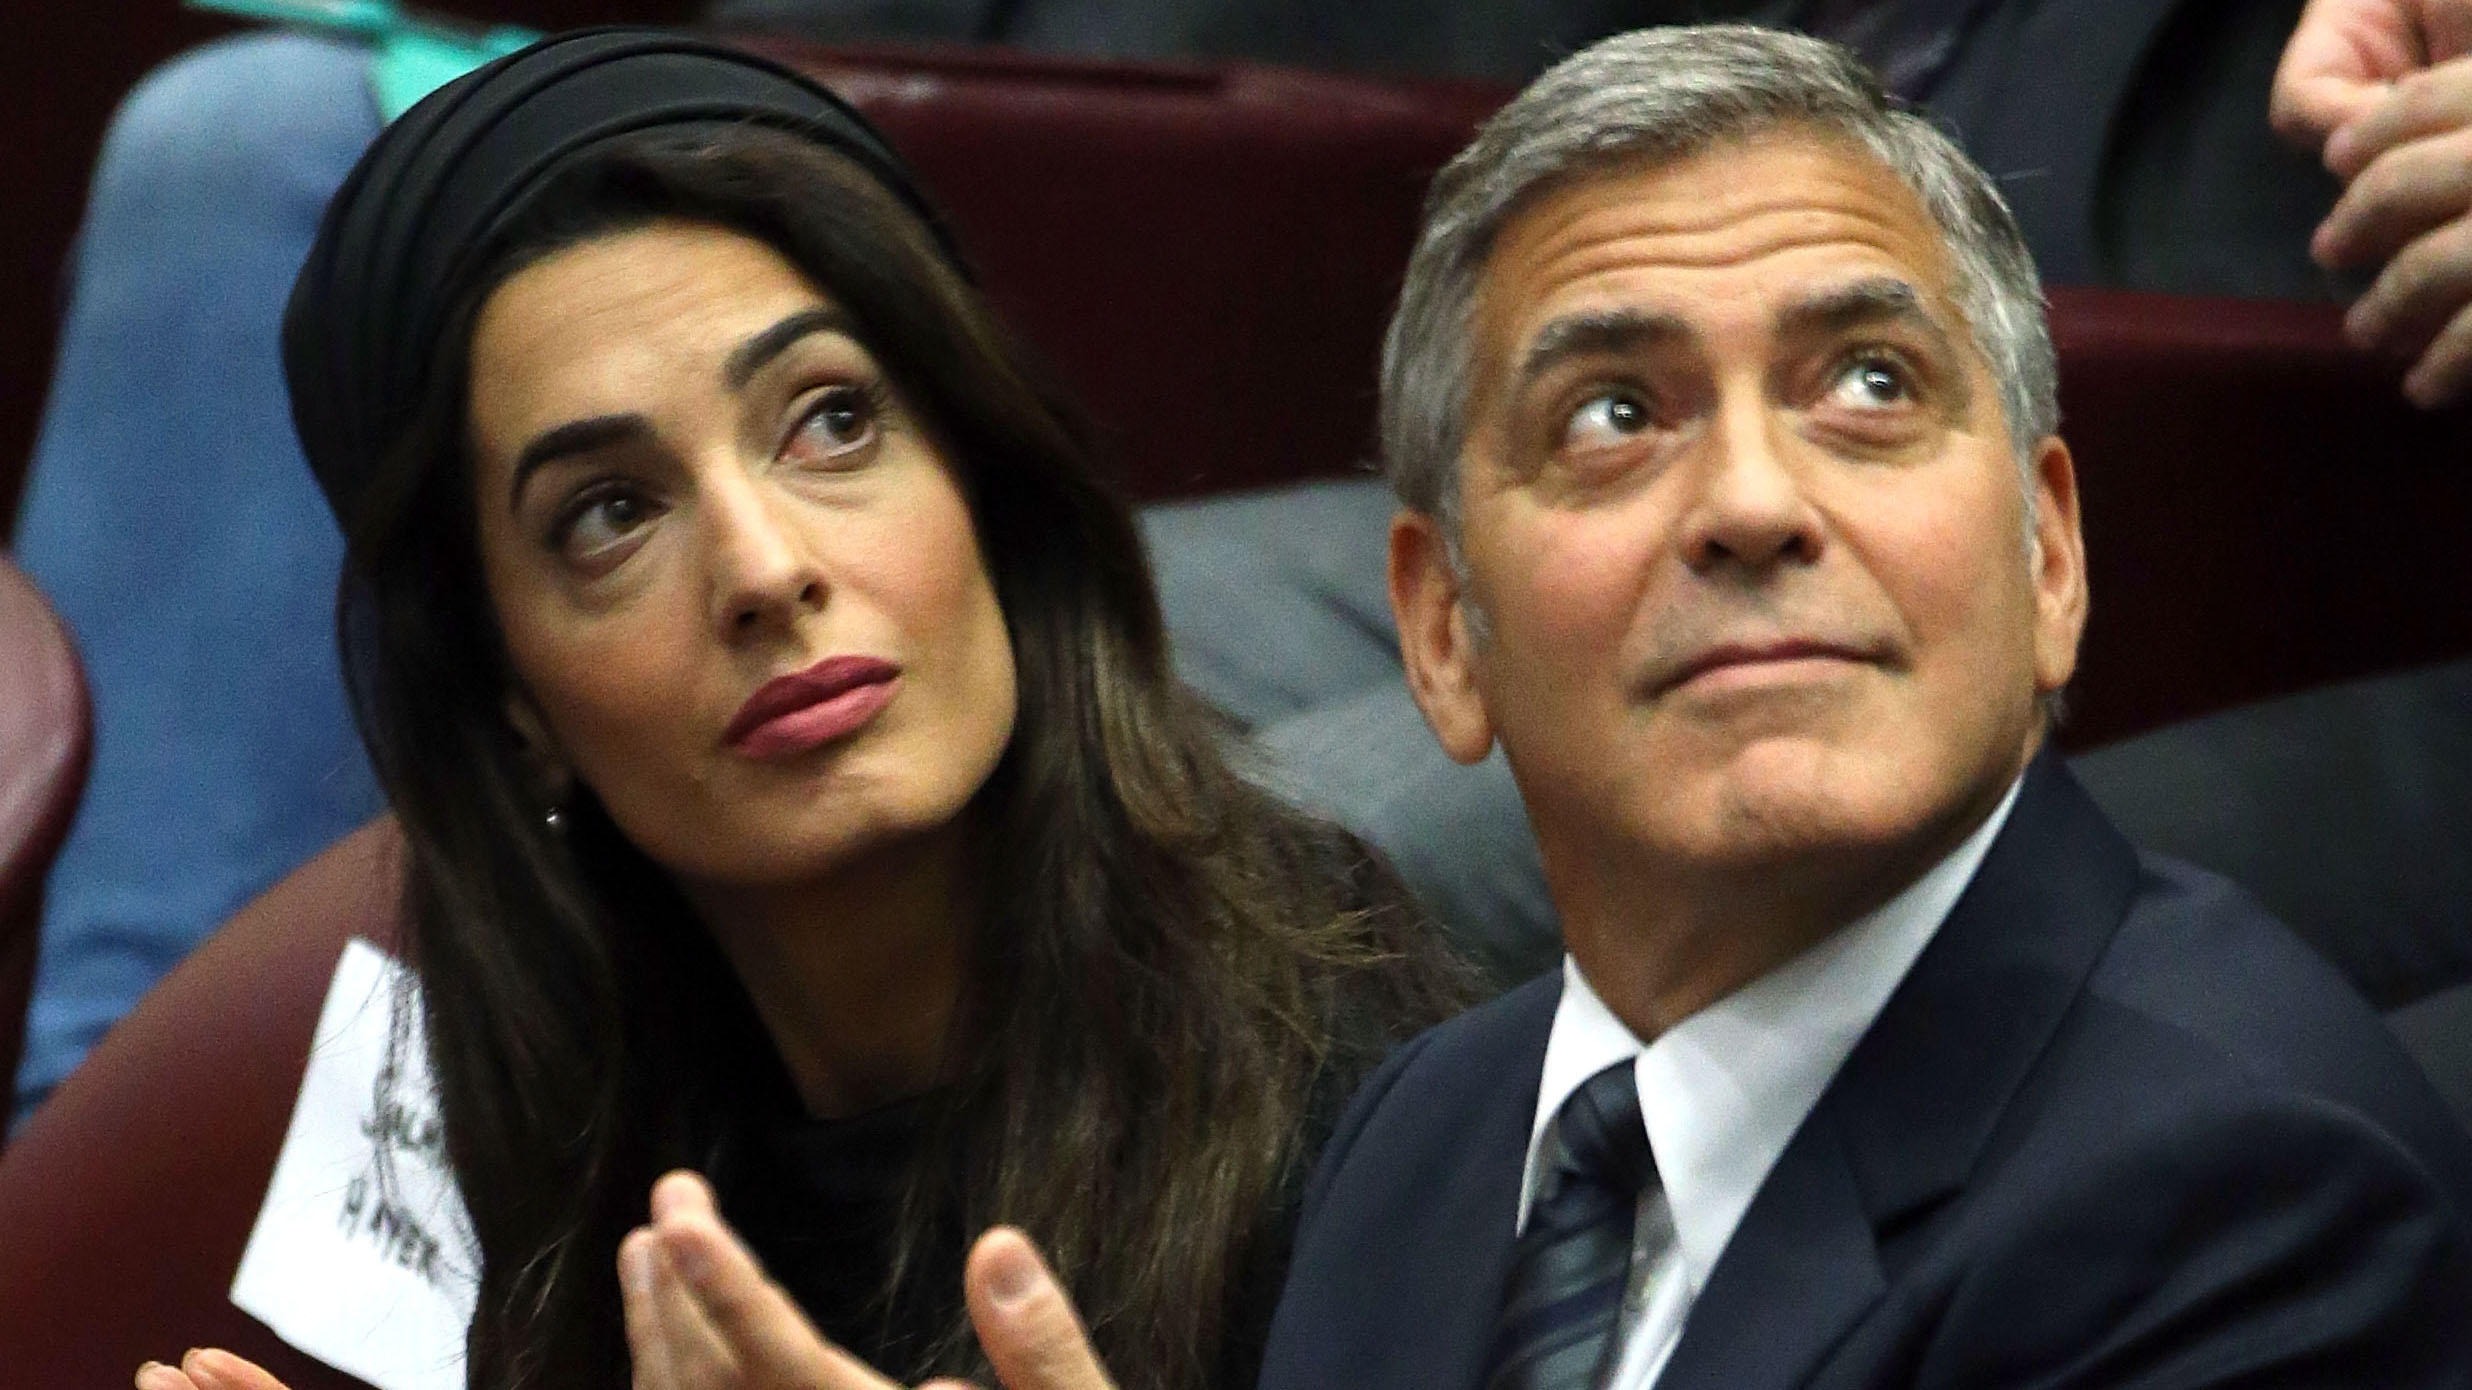 What Happened to George Clooney? Details on His Accident